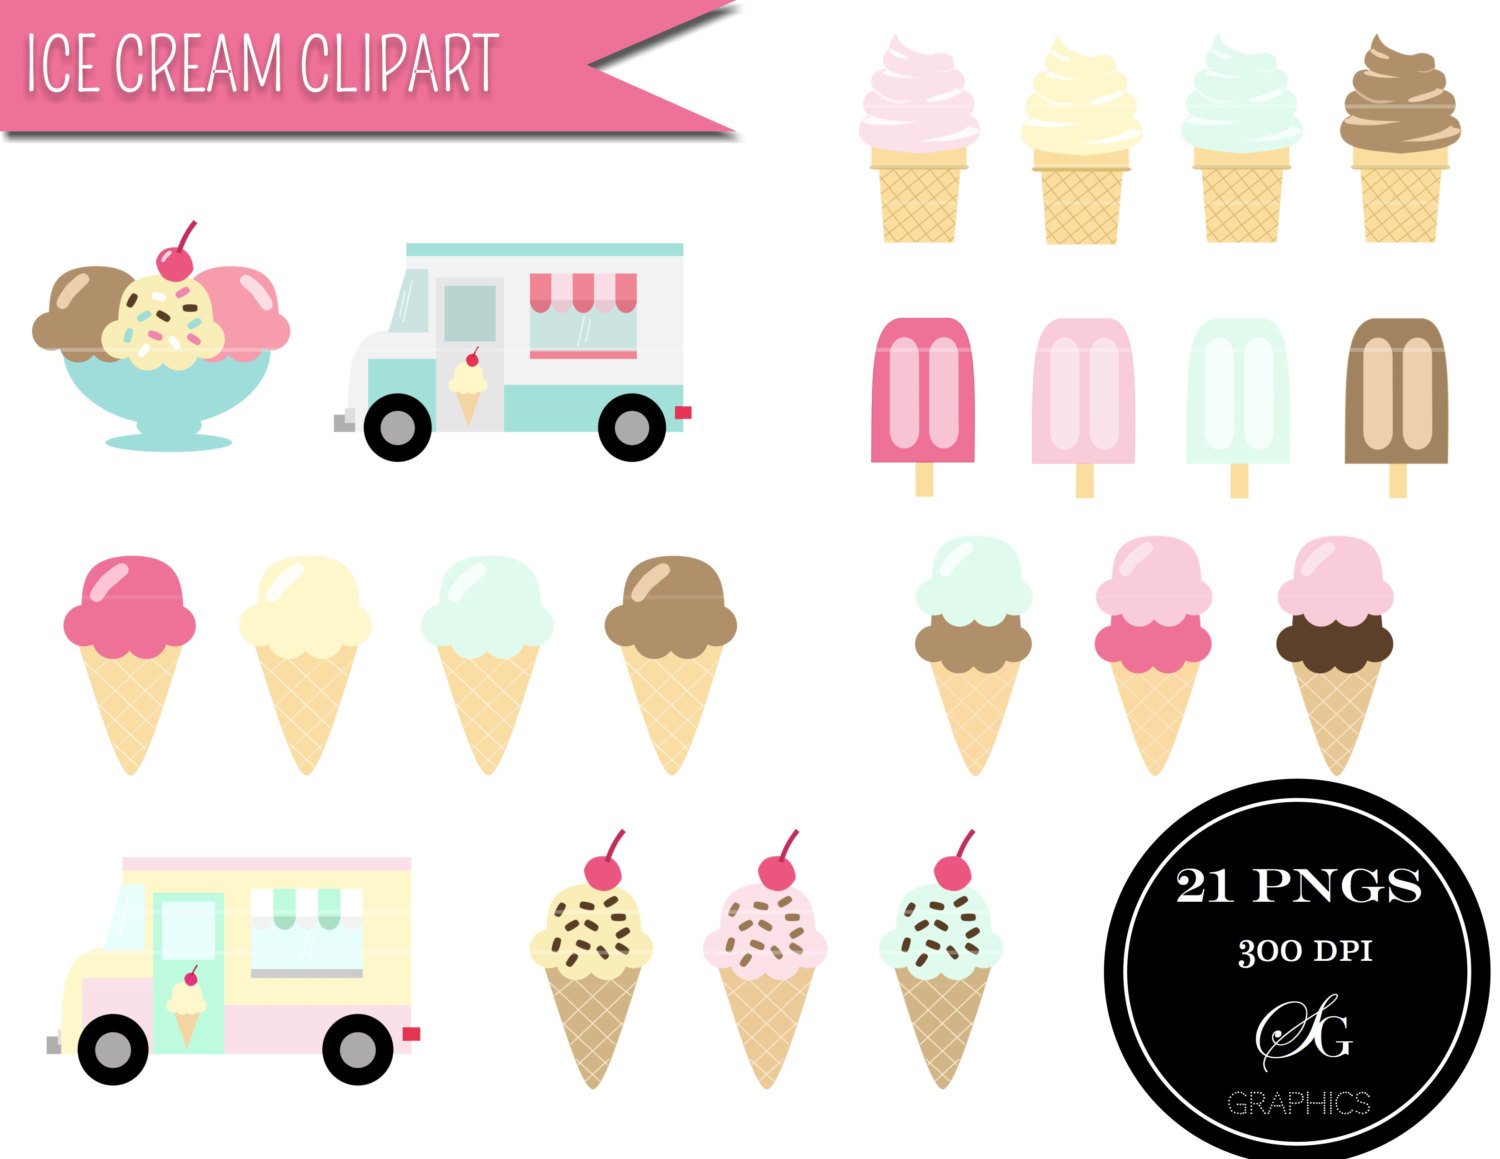 Mint clipart icecream Clipart cone cream cream digital